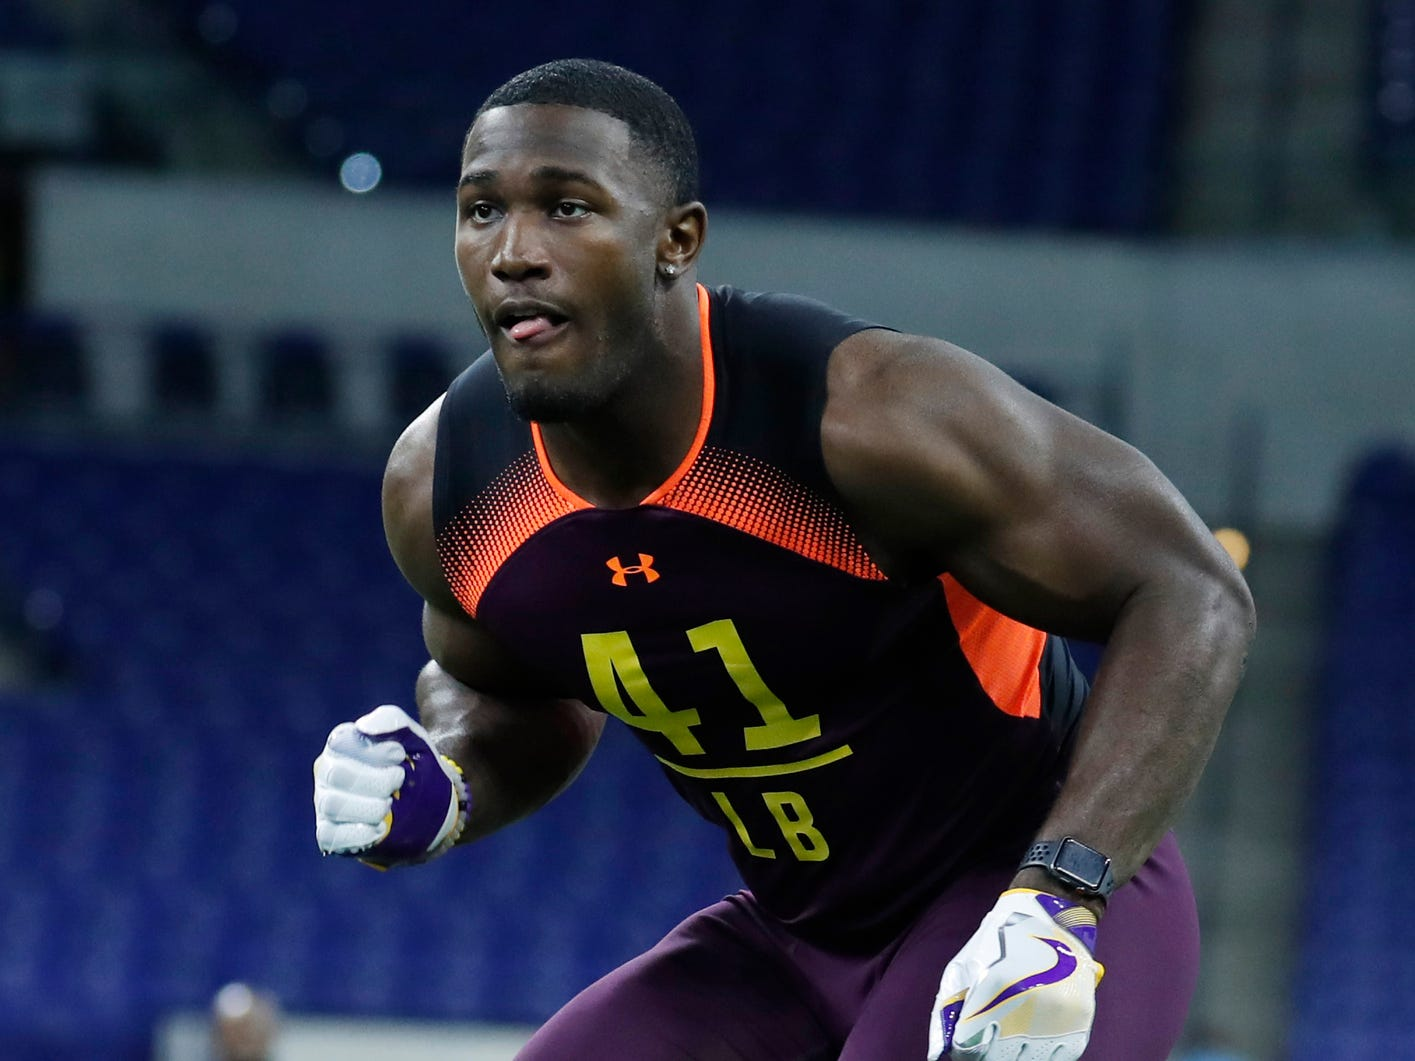 7. Jacksonville Jaguars: LB Devin White, LSU – Myles Jack is better suited to play outside, so White can take over at middle linebacker.